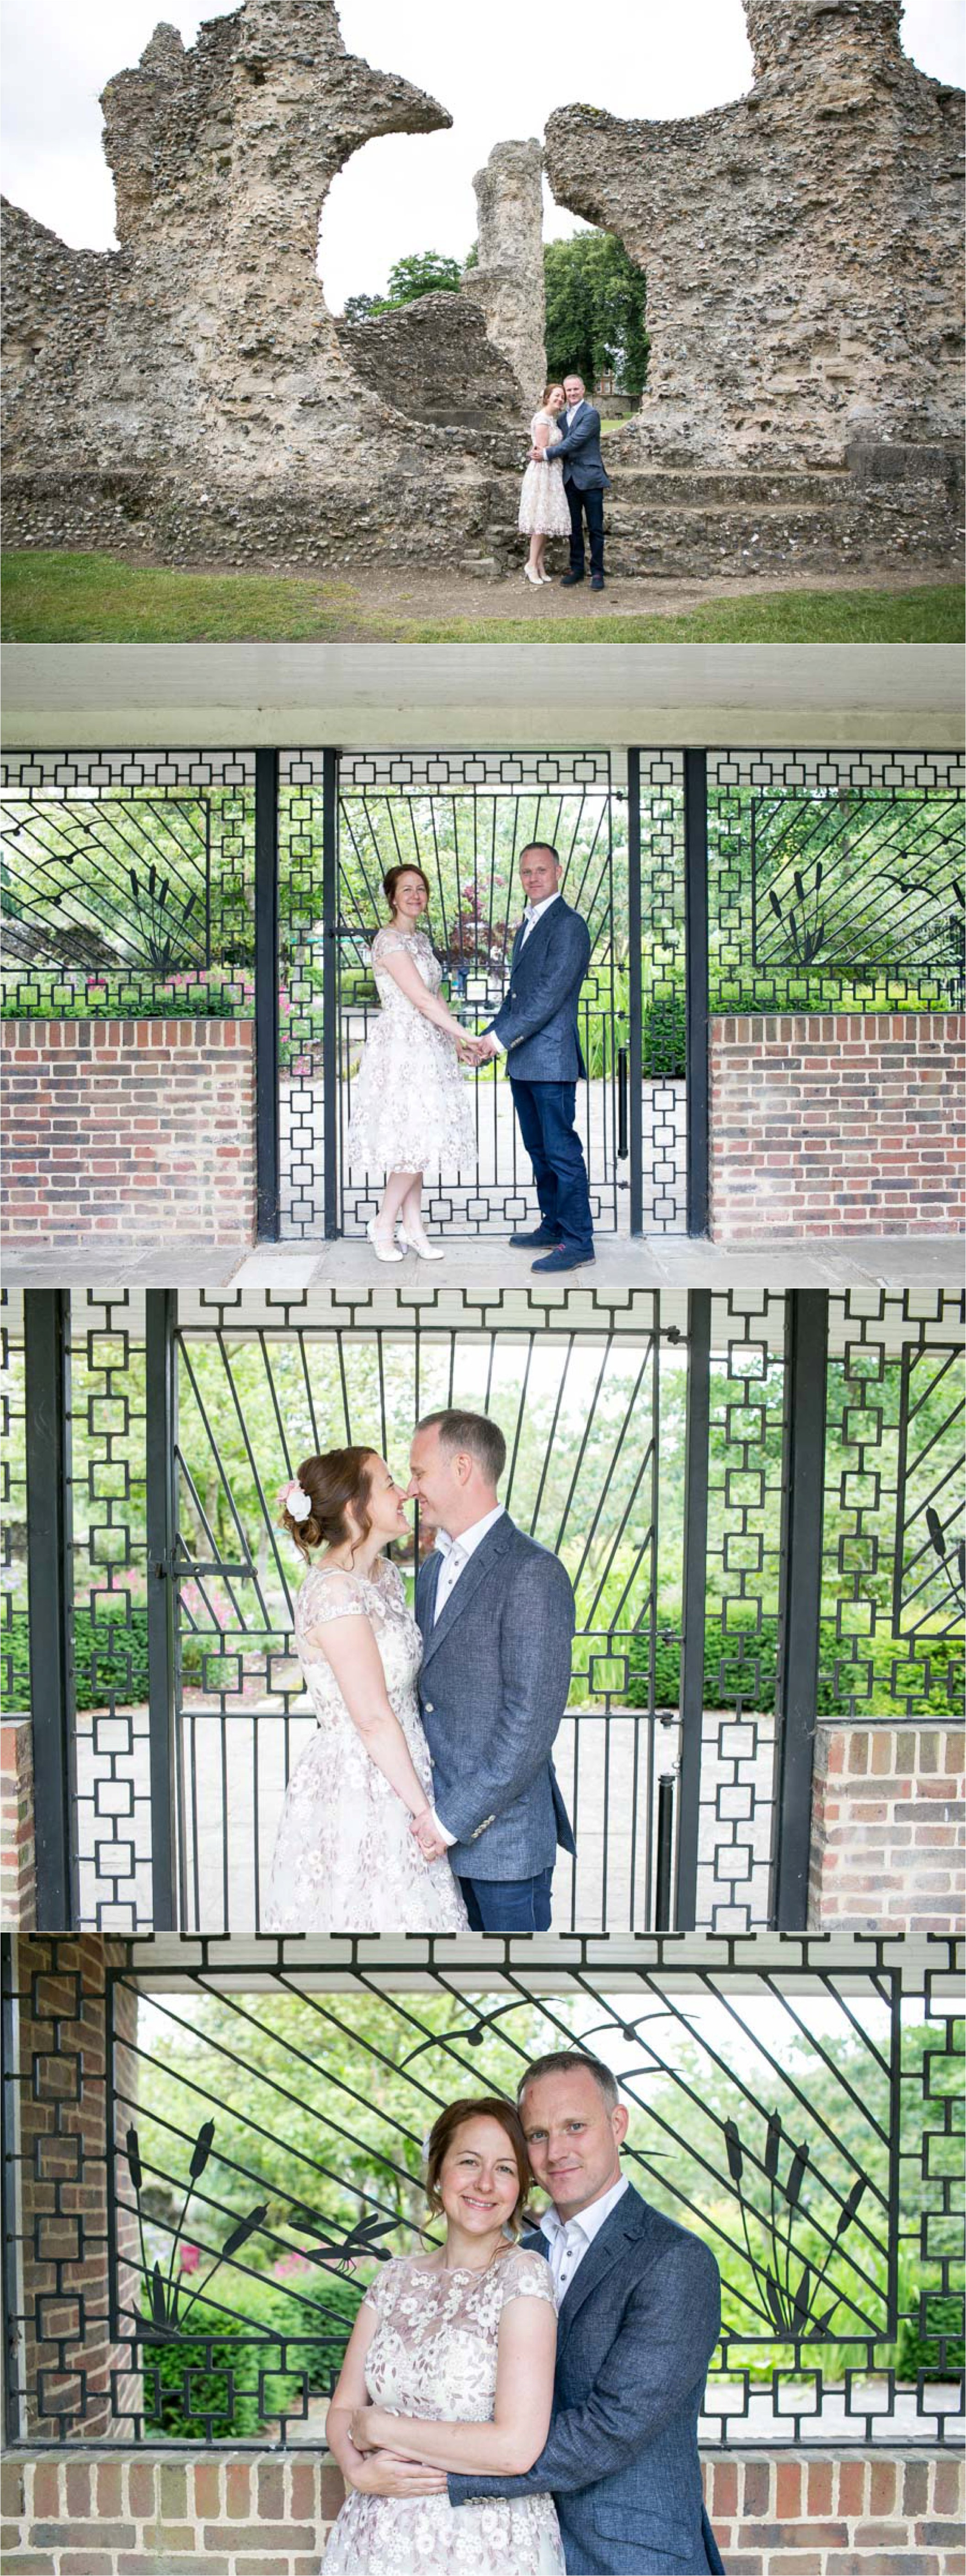 elopement wedding photography in the abbey garden, bury st edmunds.